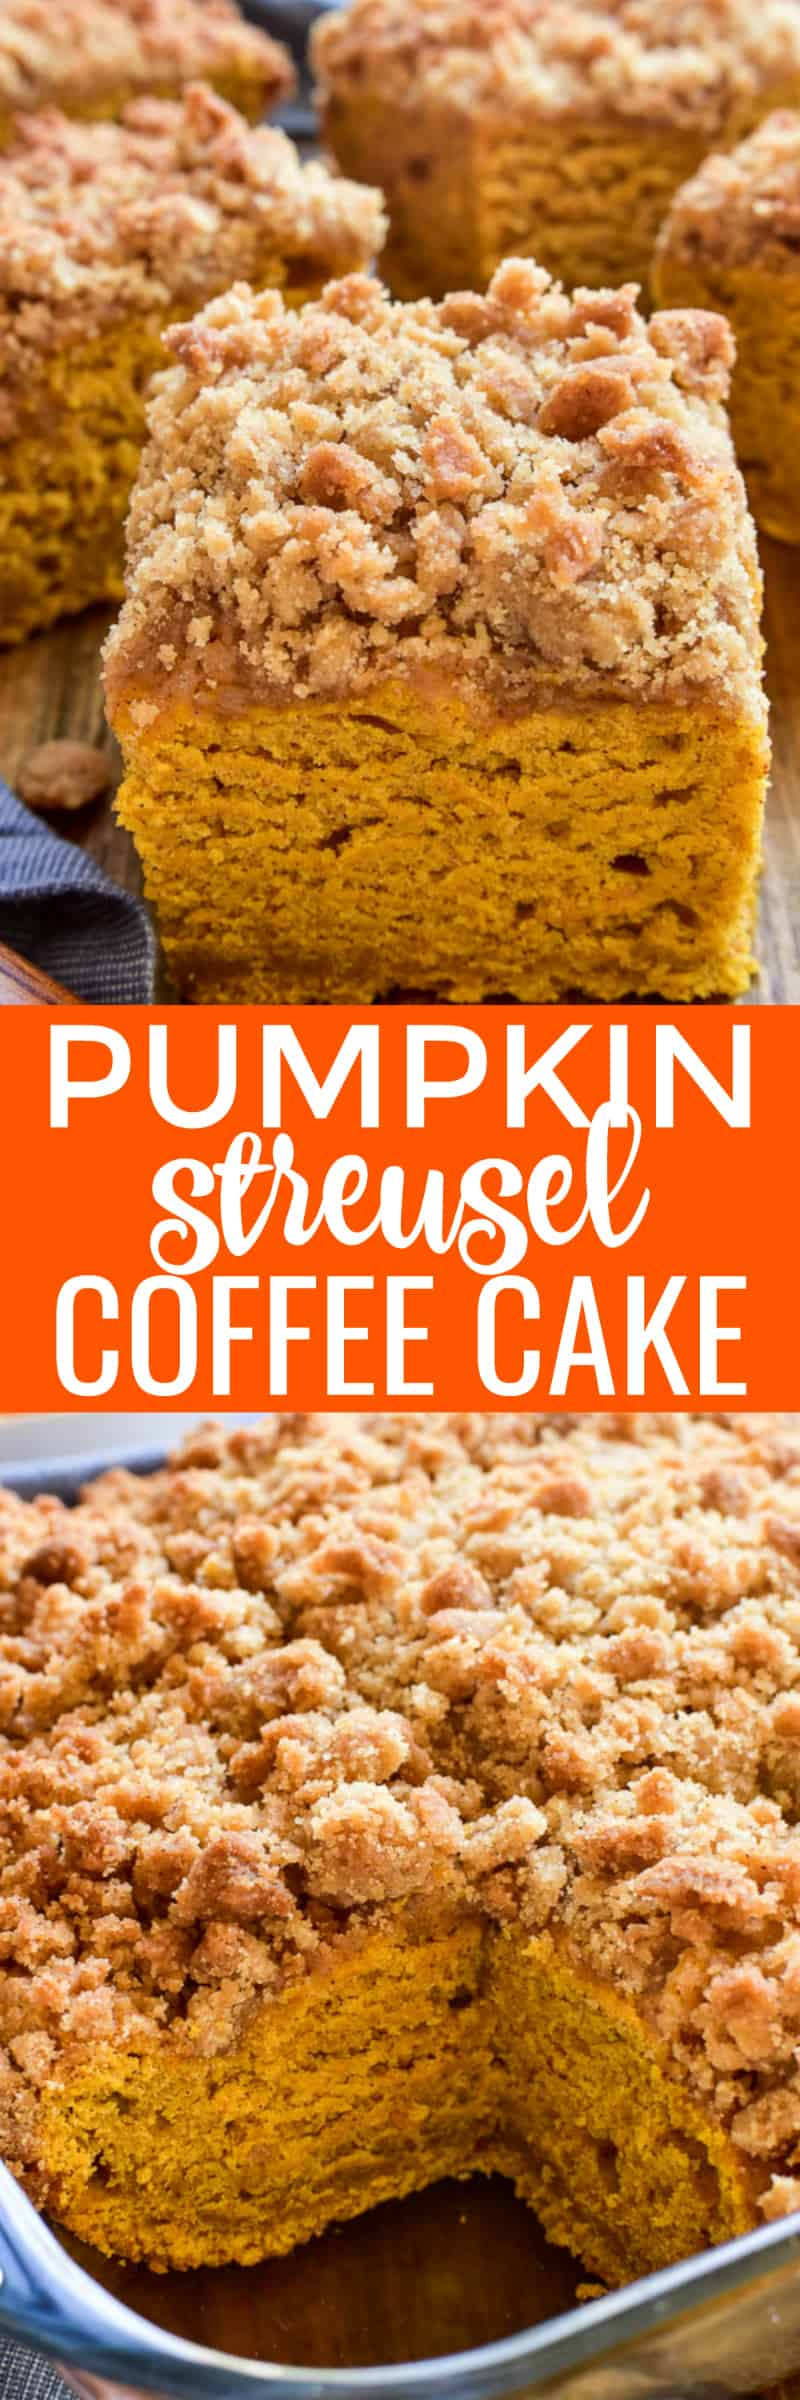 Pumpkin Coffee Cake with cinnamon streusel topping is the ultimate taste of fall! This coffee cake is packed with delicious pumpkin flavor and topped with a crunchy, buttery streusel topping. Perfect for holiday brunches or a special fall treat, if you love all things pumpkin, this Pumpkin Streusel Coffee Cake is sure to become a new favorite!